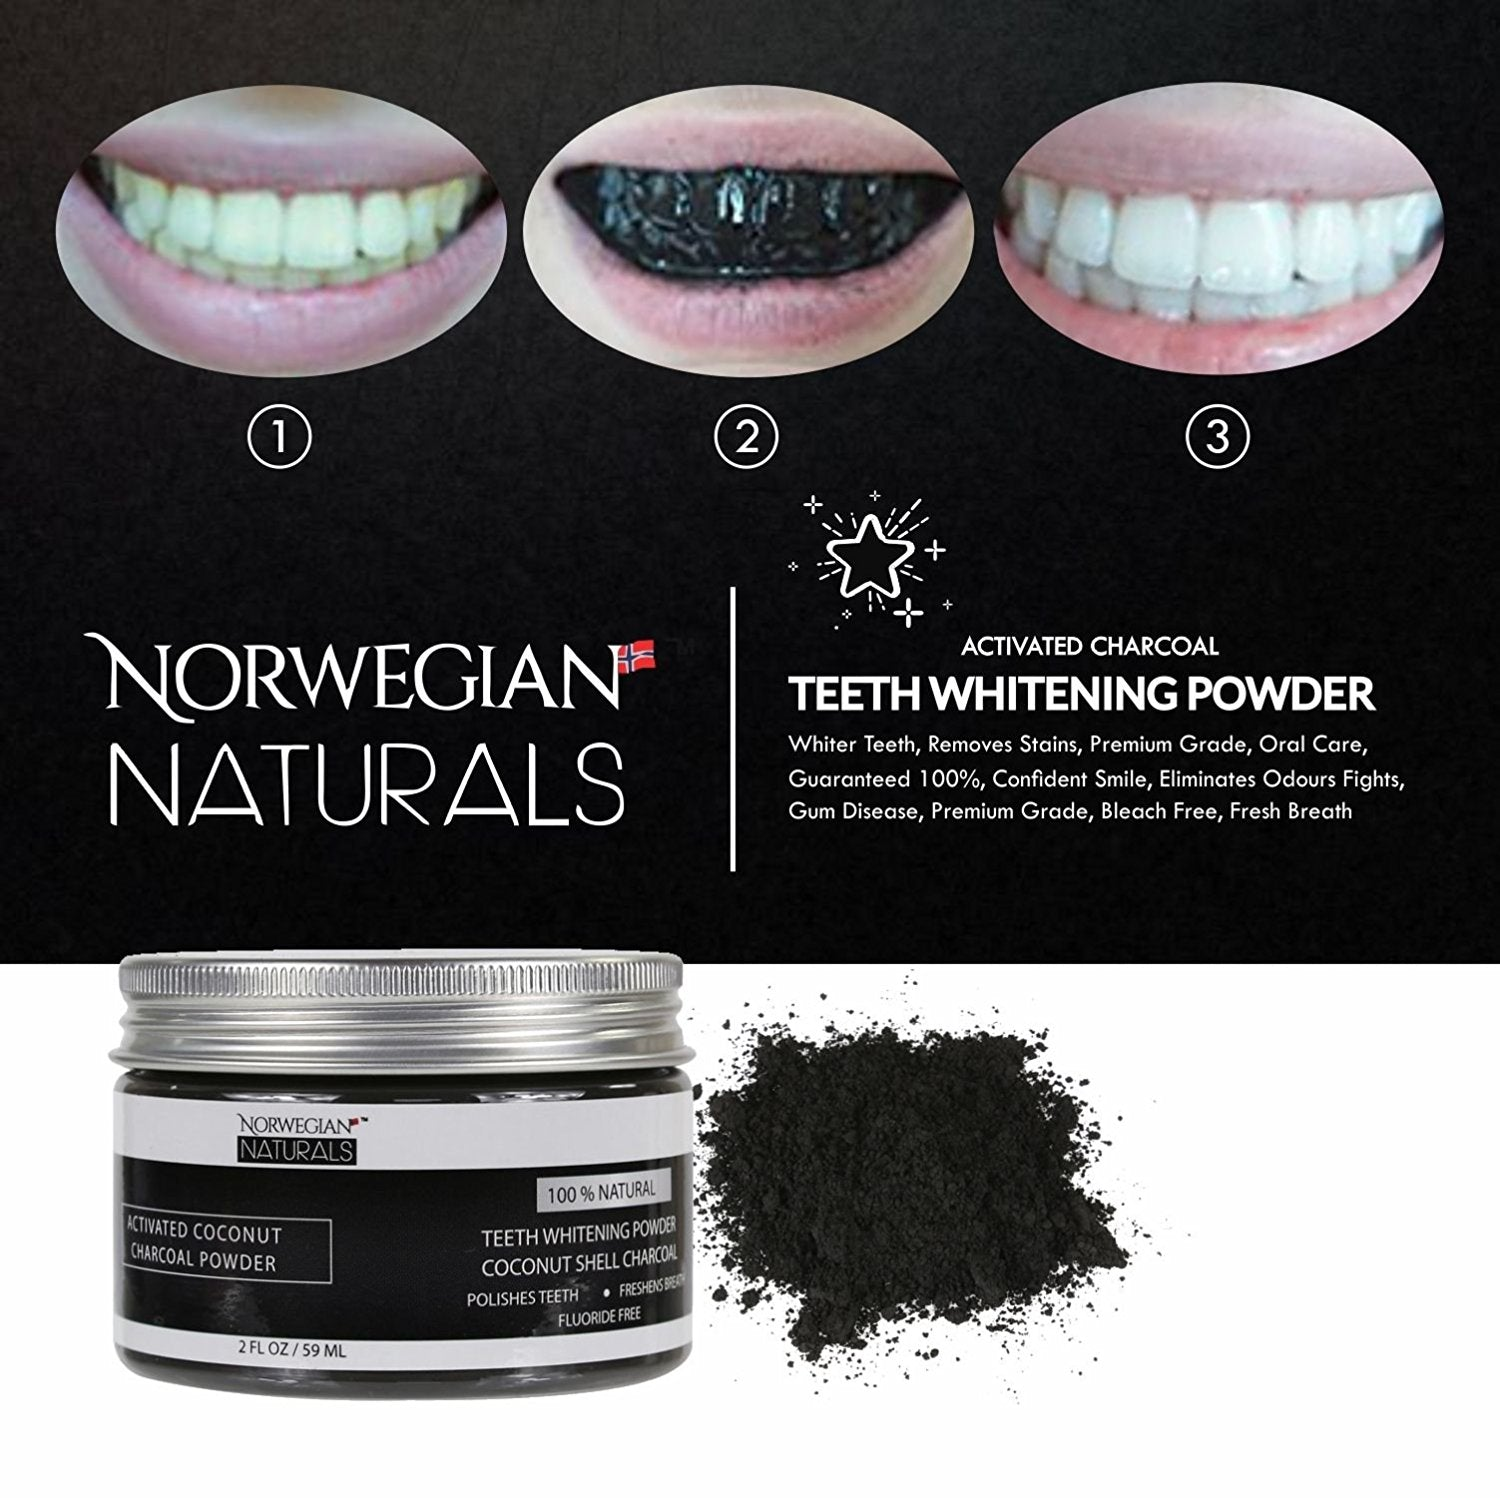 Charcoal Teeth Whitening Powder Whiter Teeth Removes Stains Premium